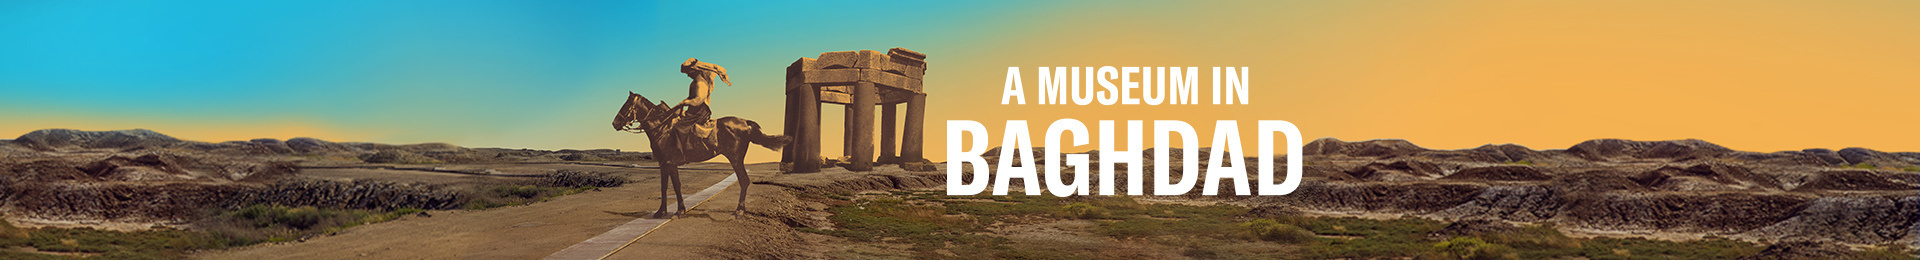 A Museum in Baghdad banner image